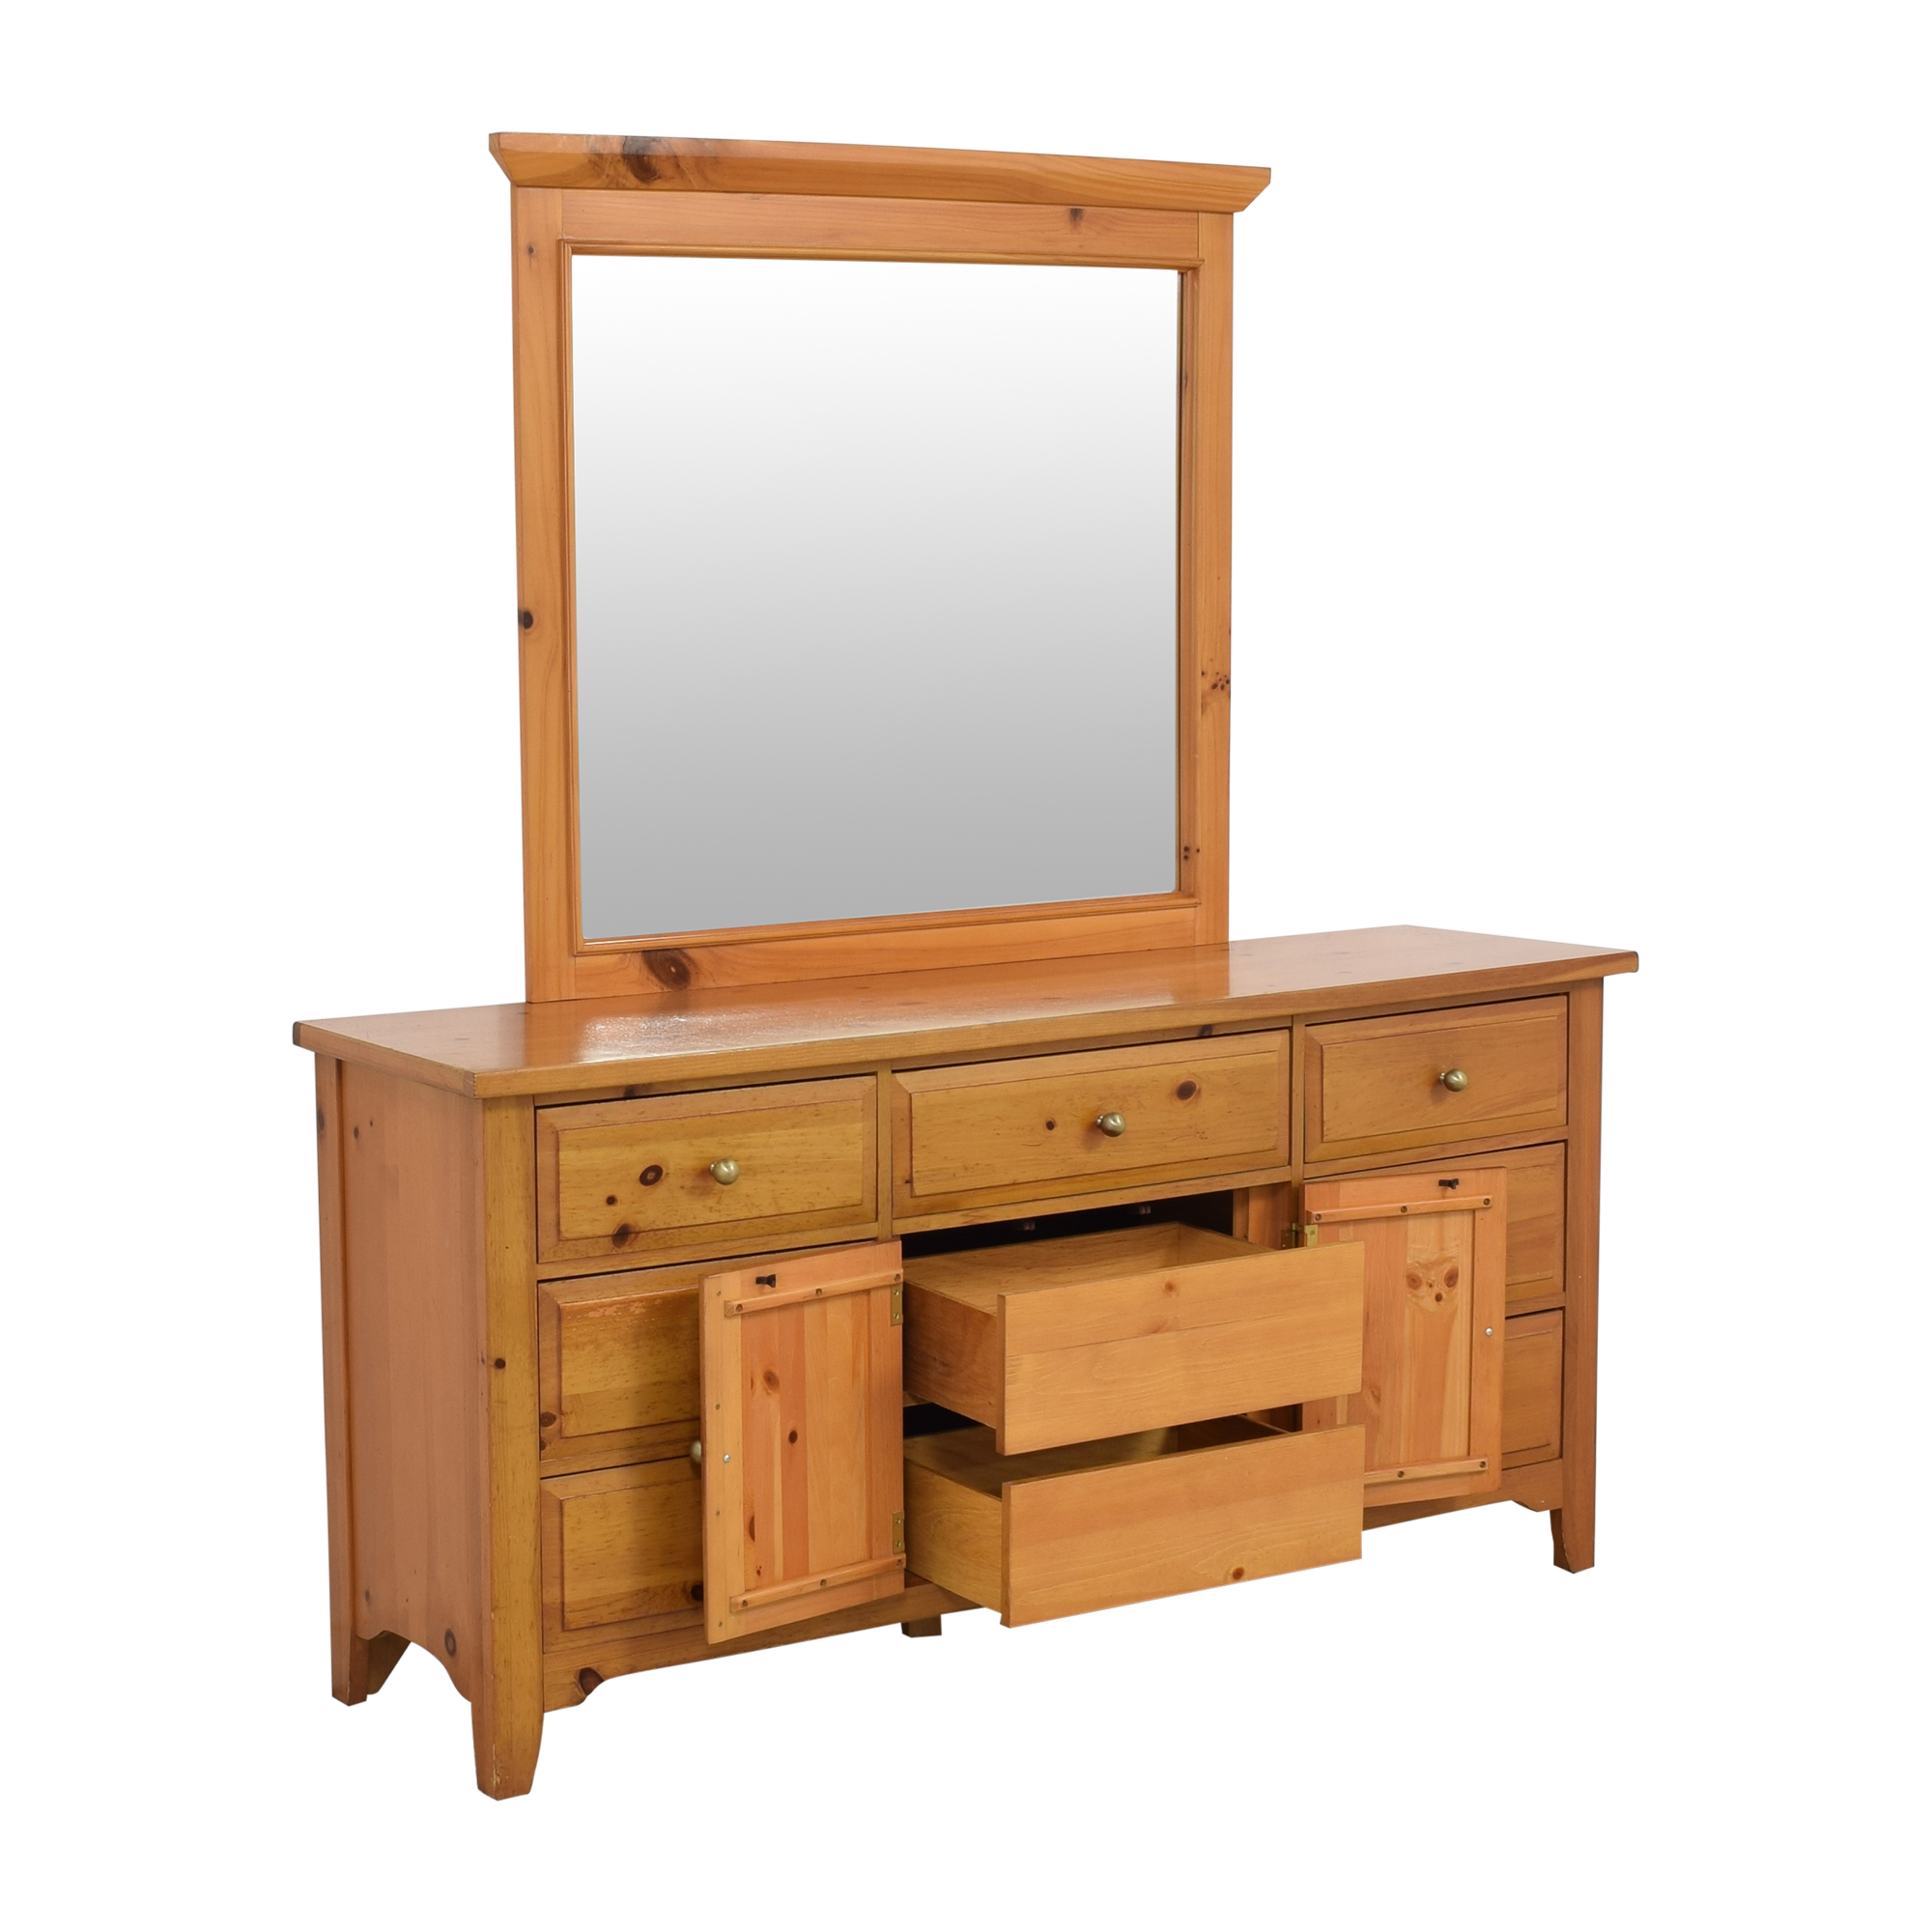 Broyhill Furniture Broyhill Shaker Style Dresser and Mirror